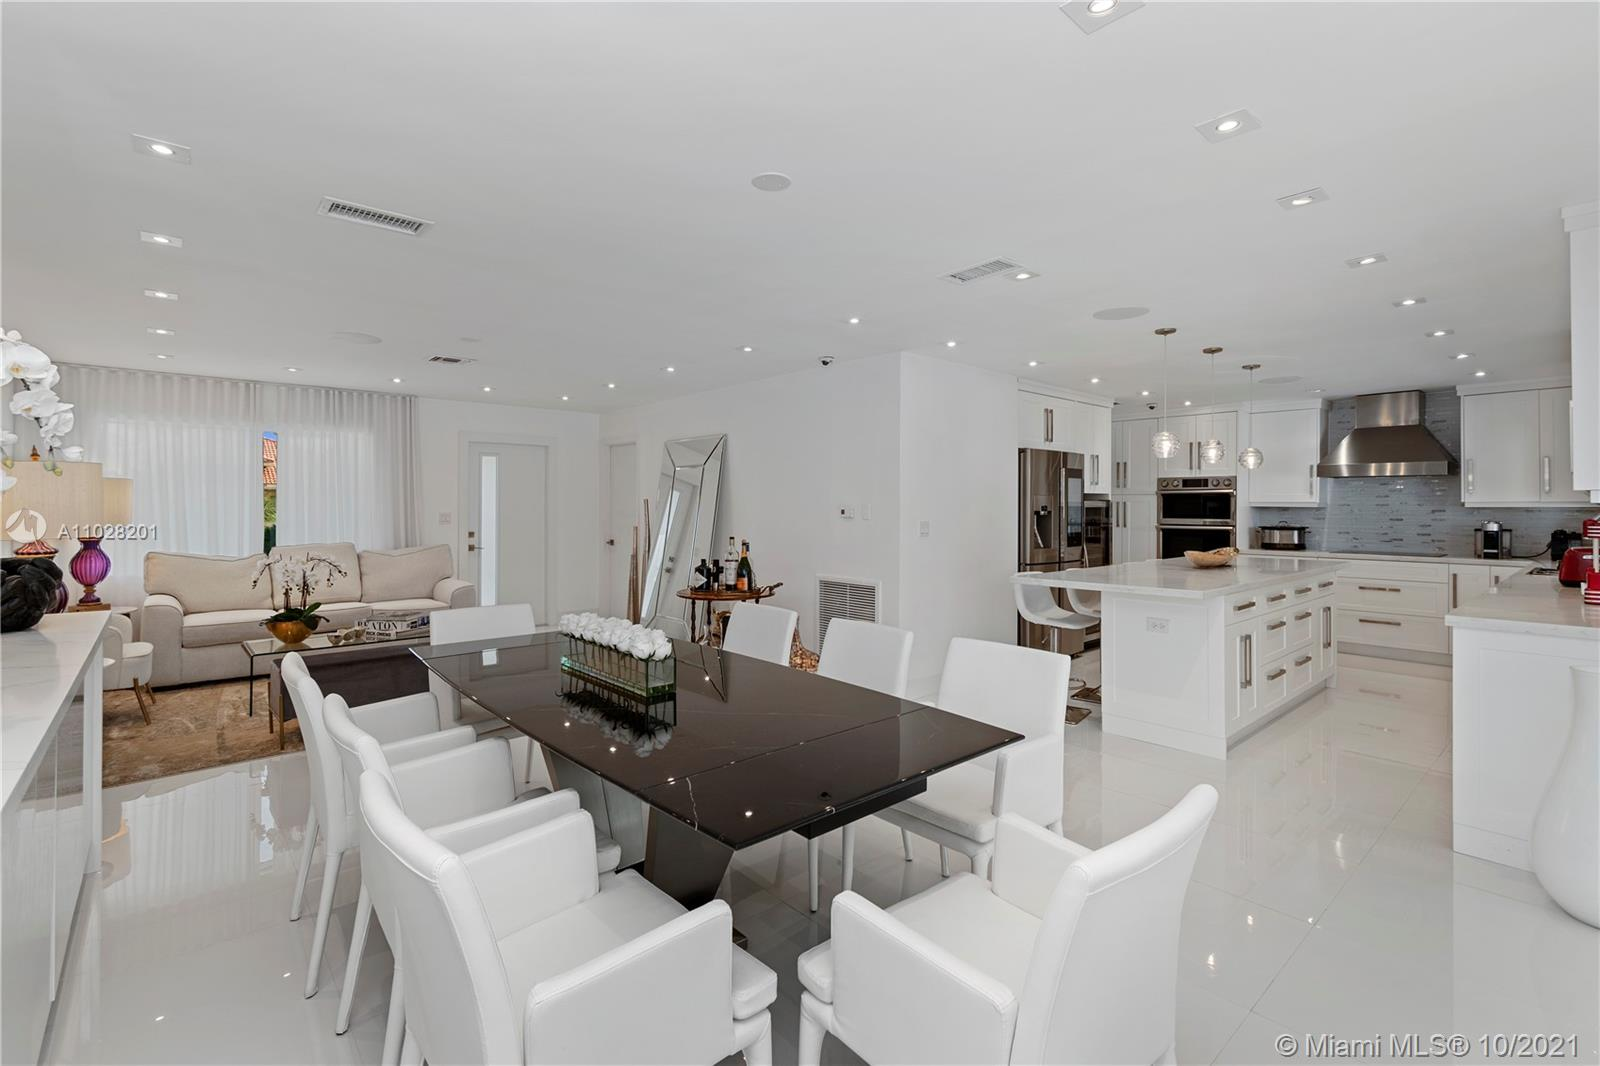 Open floor plan concept, spacious, modern and chic!